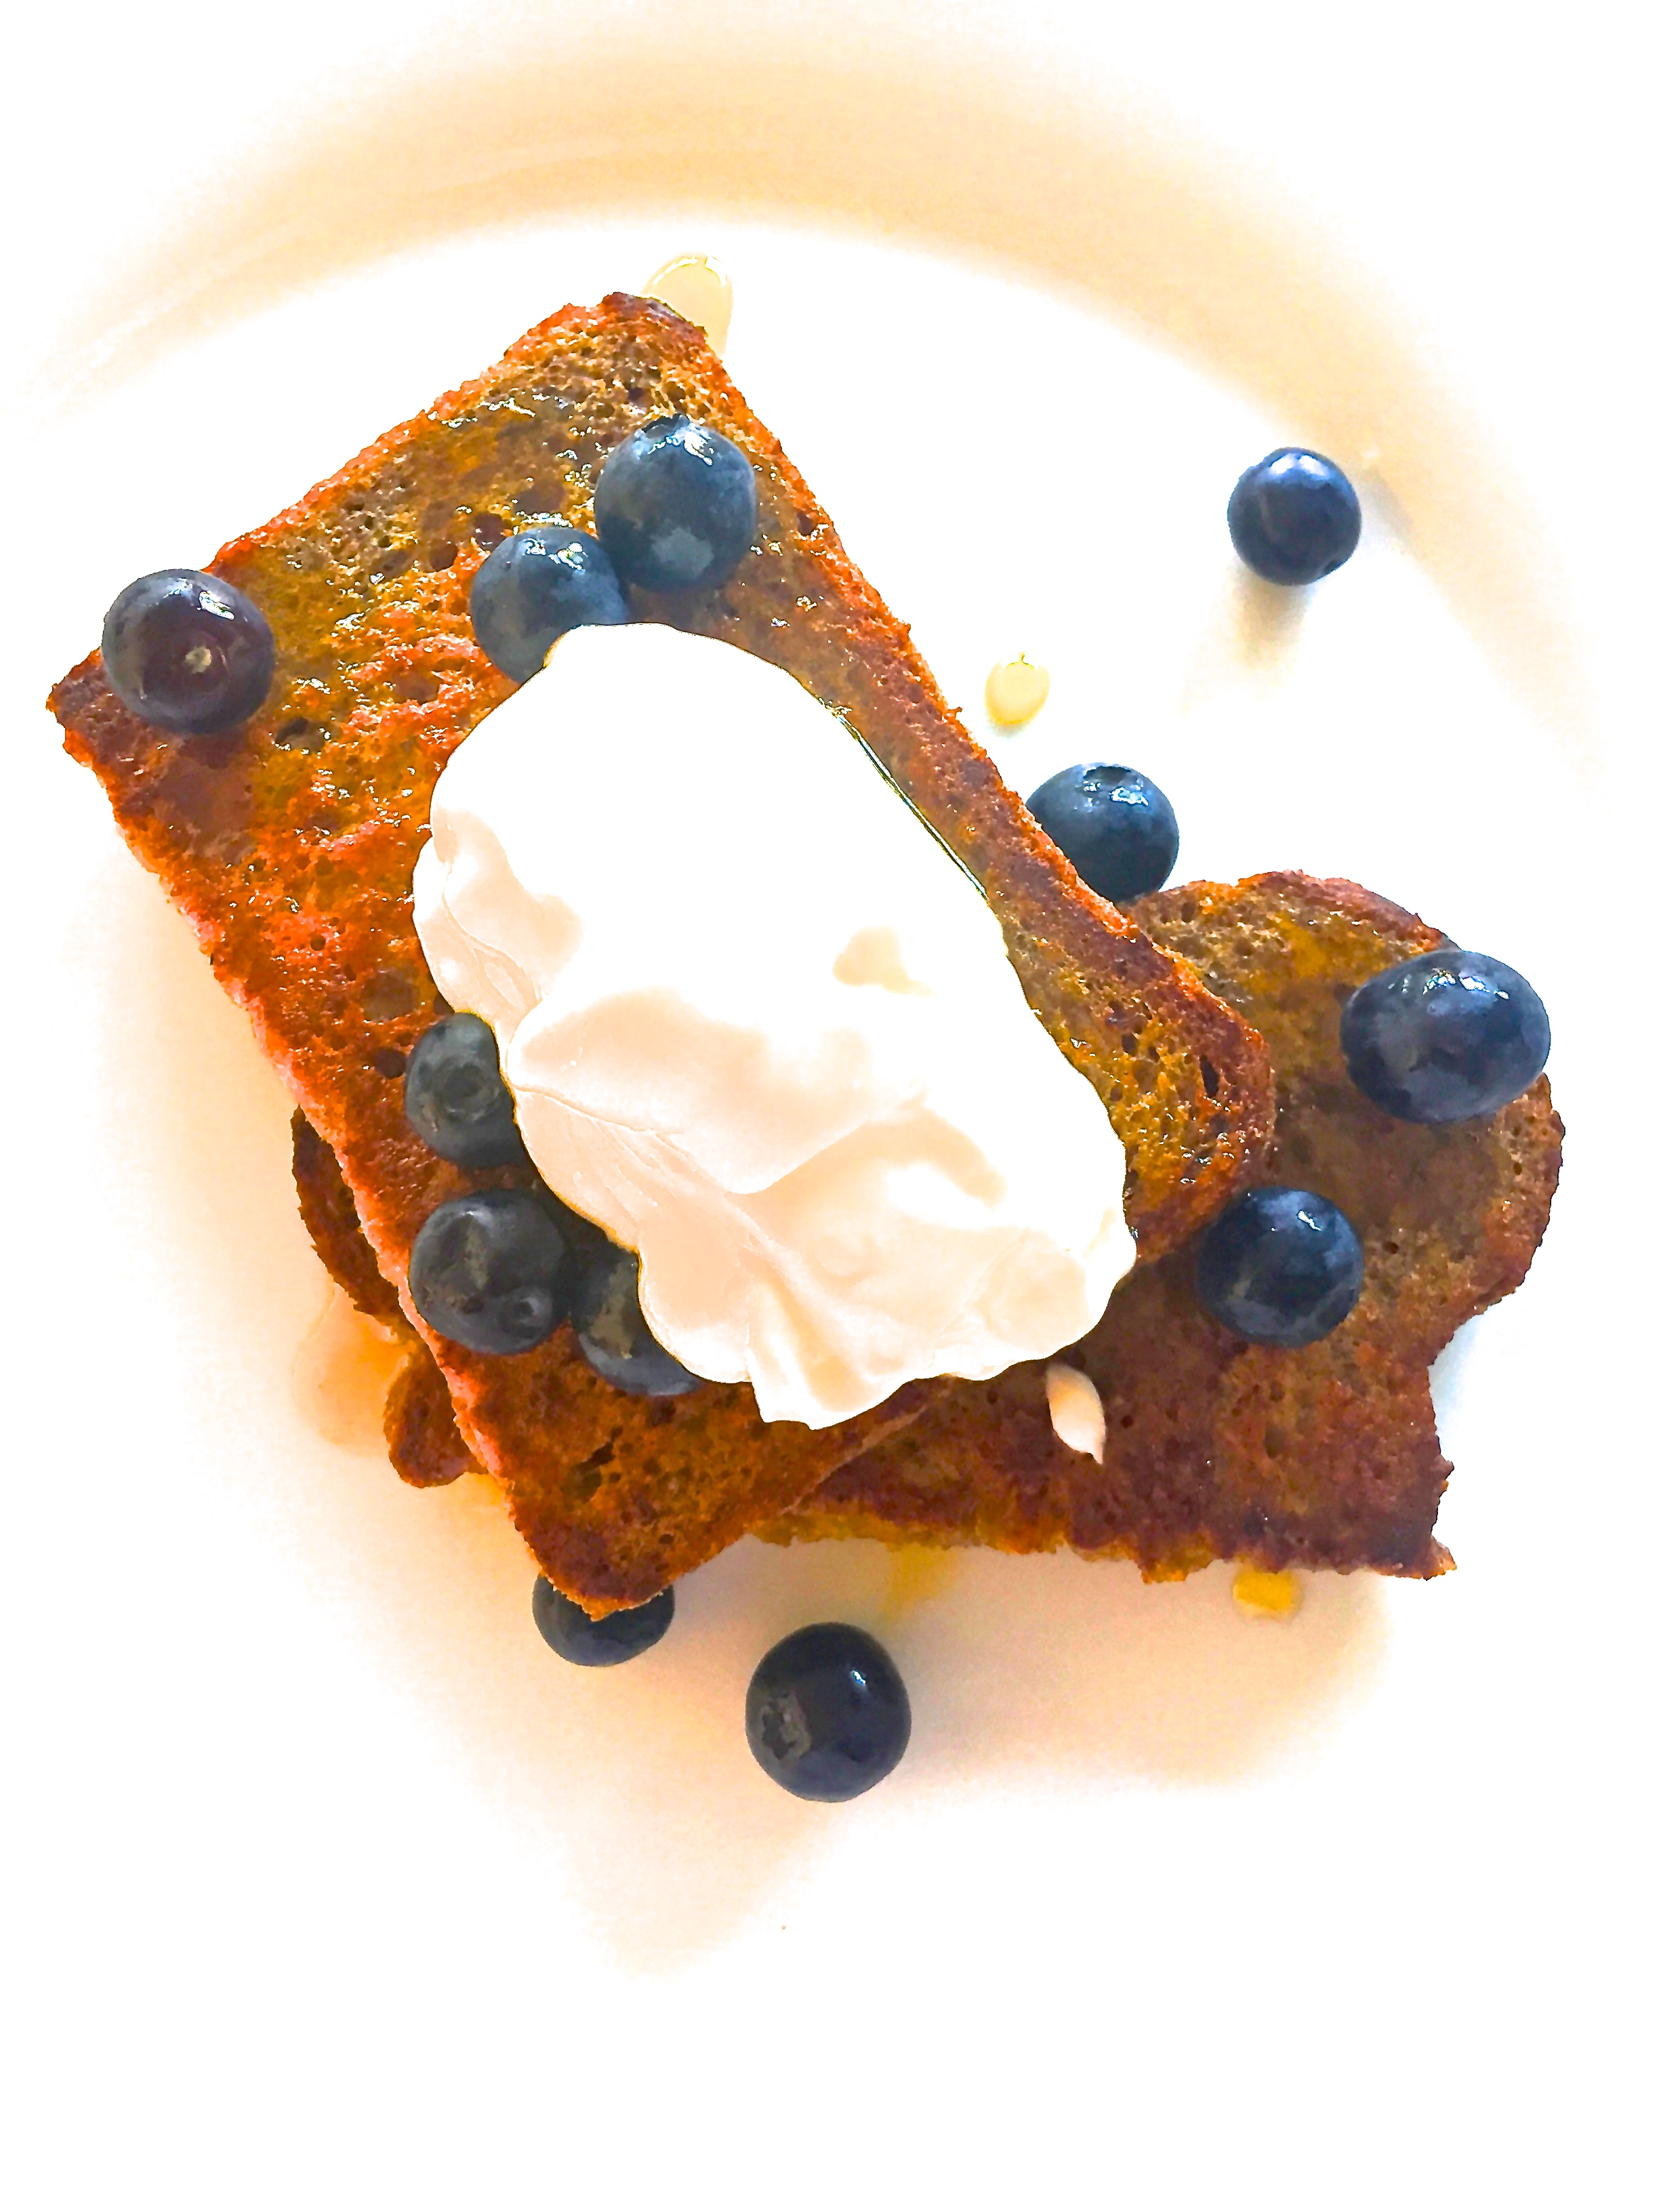 French Toast with Mint Infused Honey